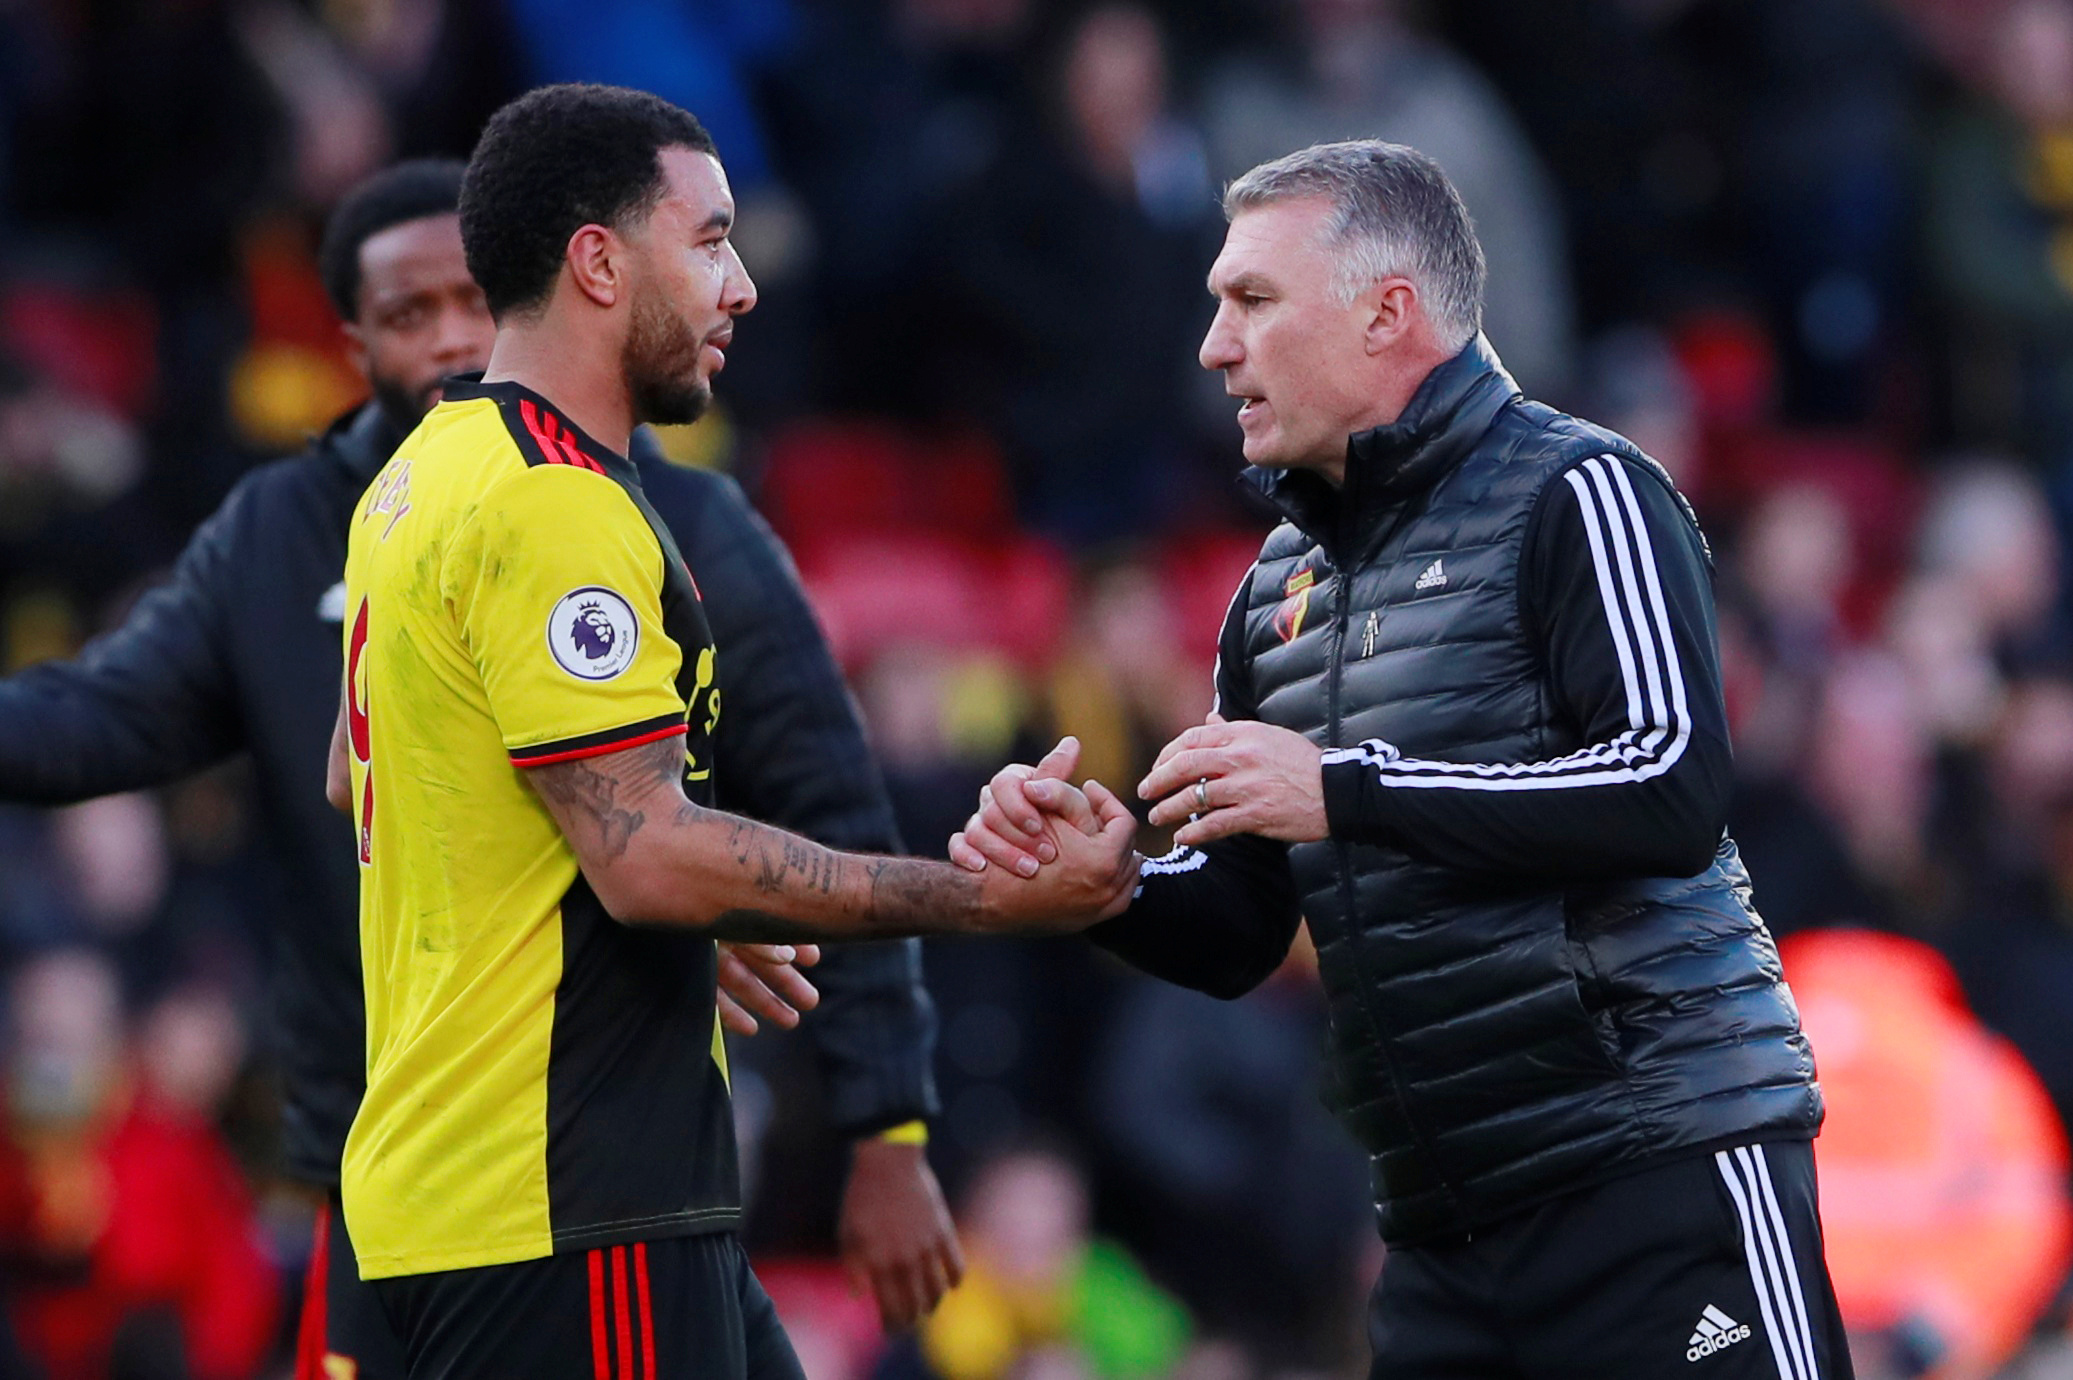 Nigel Pearson believes Troy Deeney can once again rise to penalty pressure for Watford